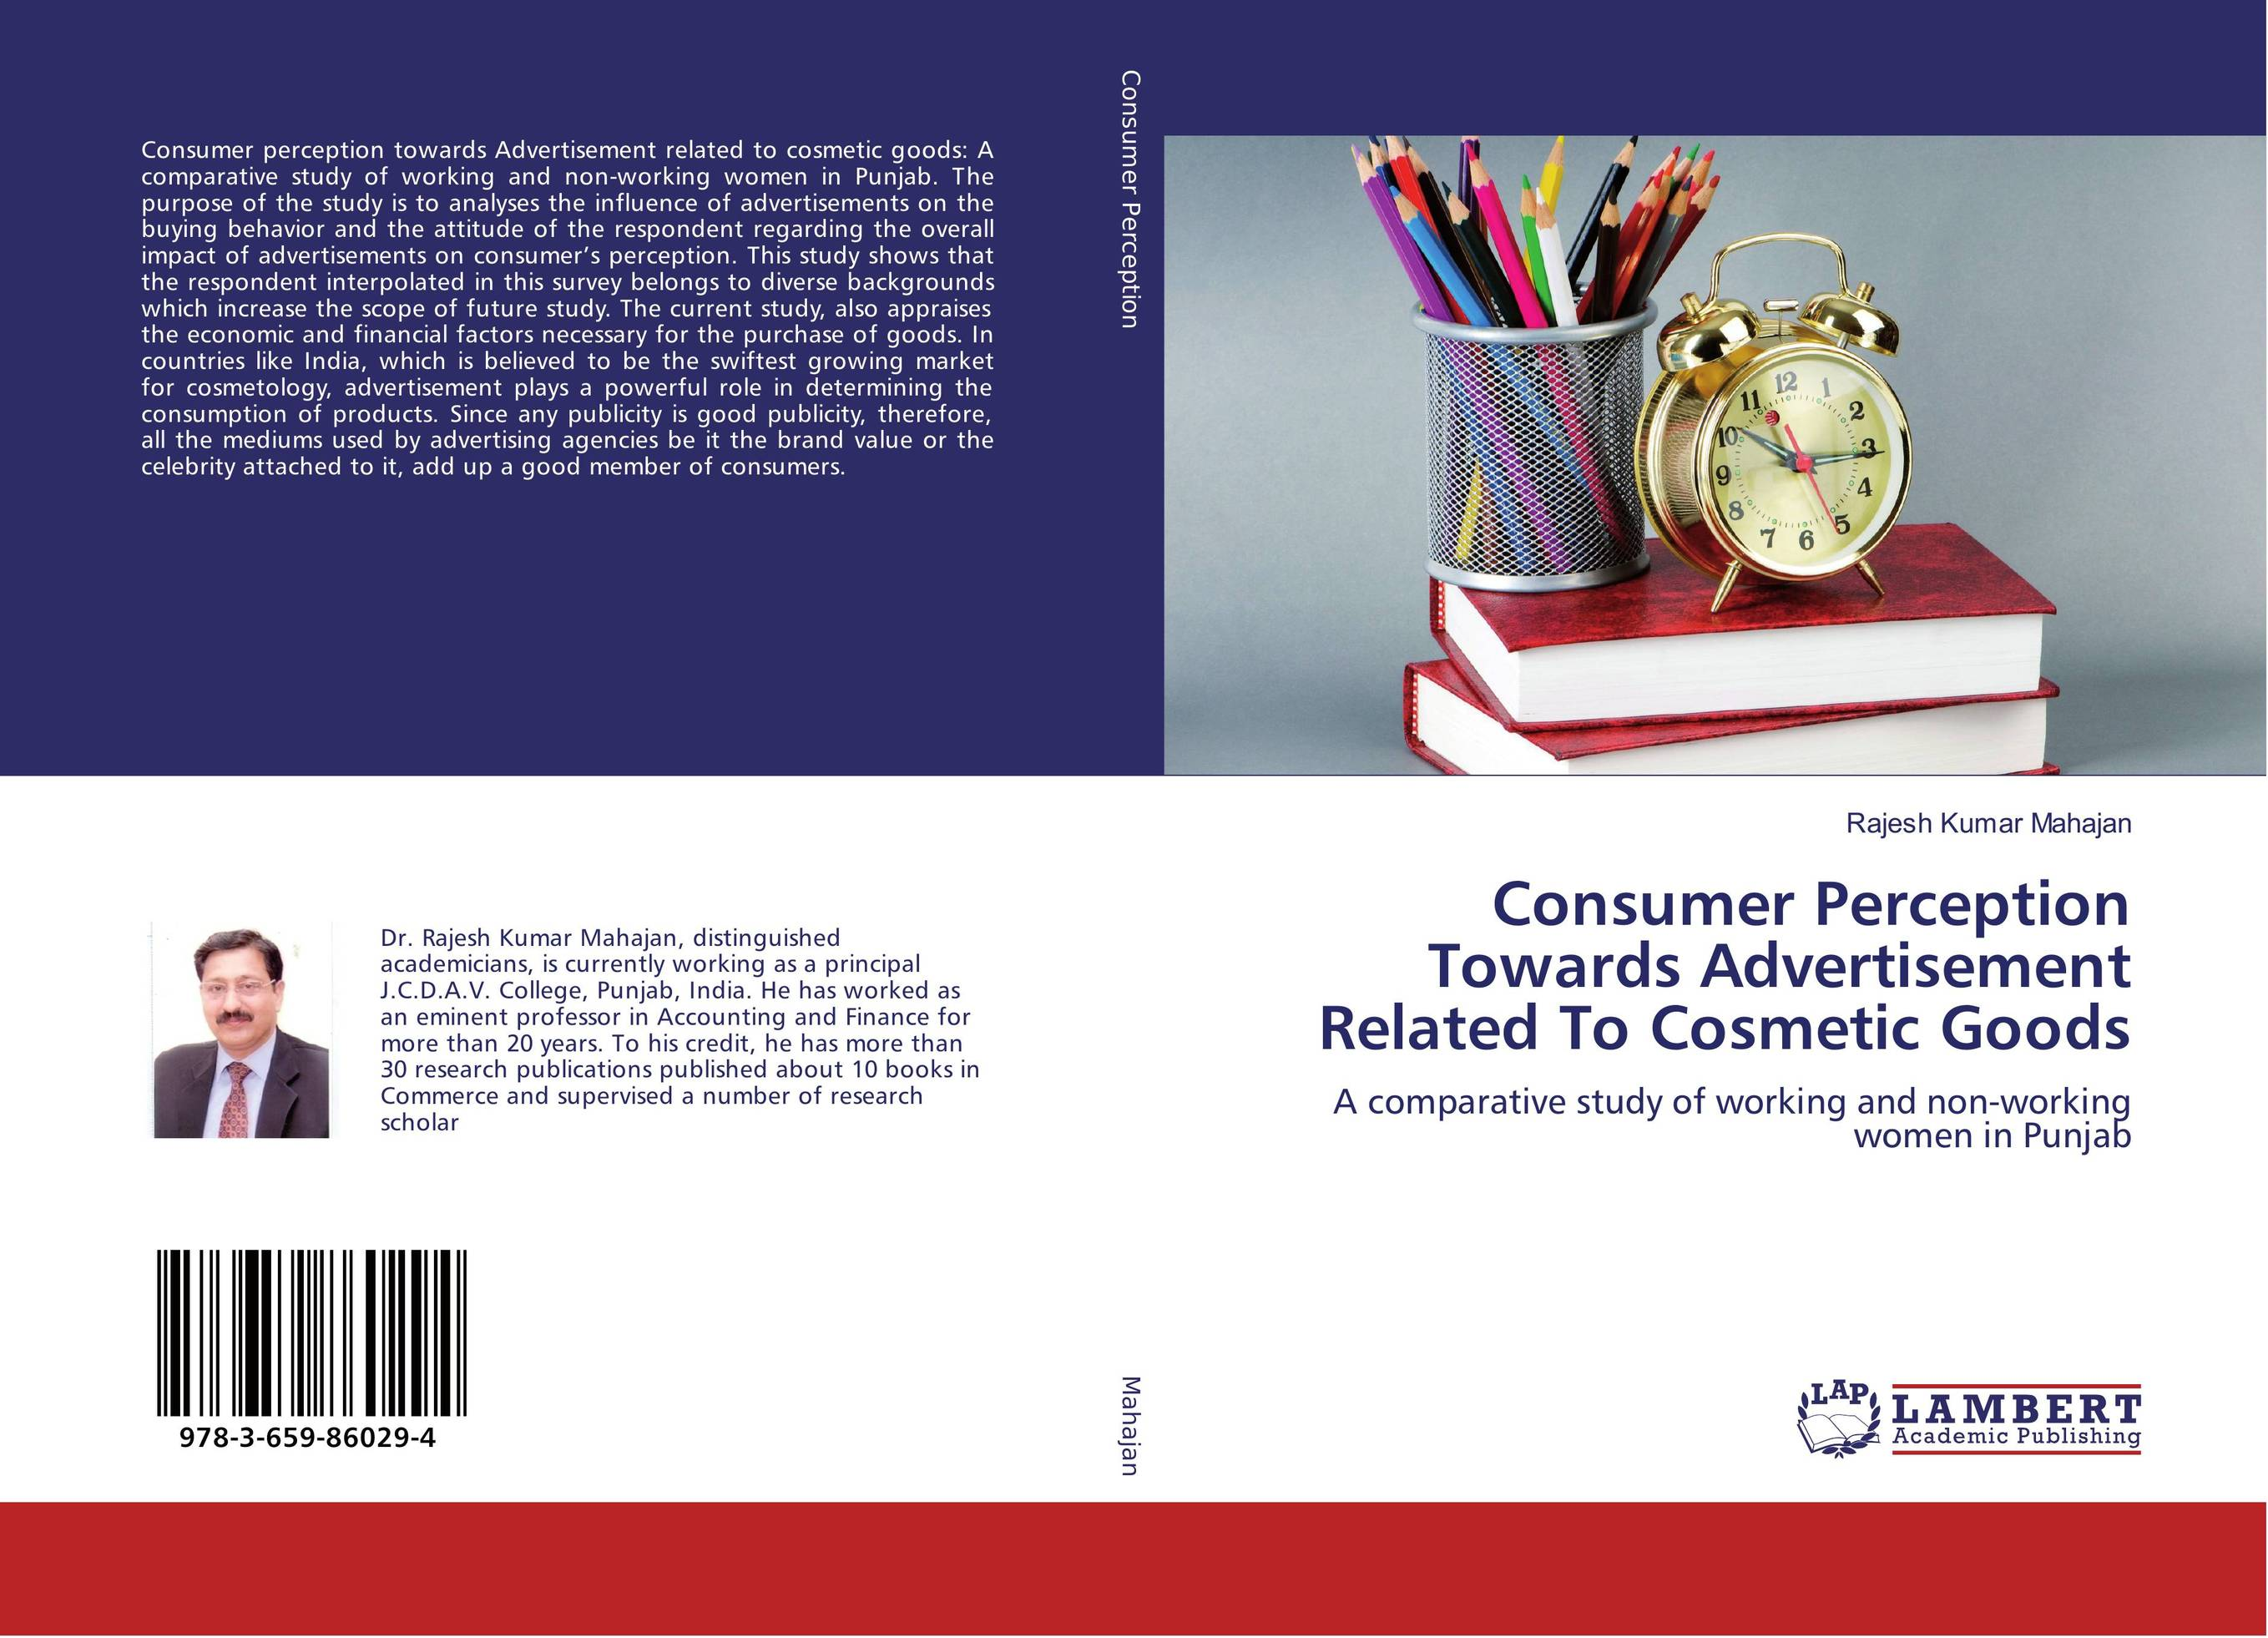 Consumer Perception Towards Advertisement Related To Cosmetic Goods